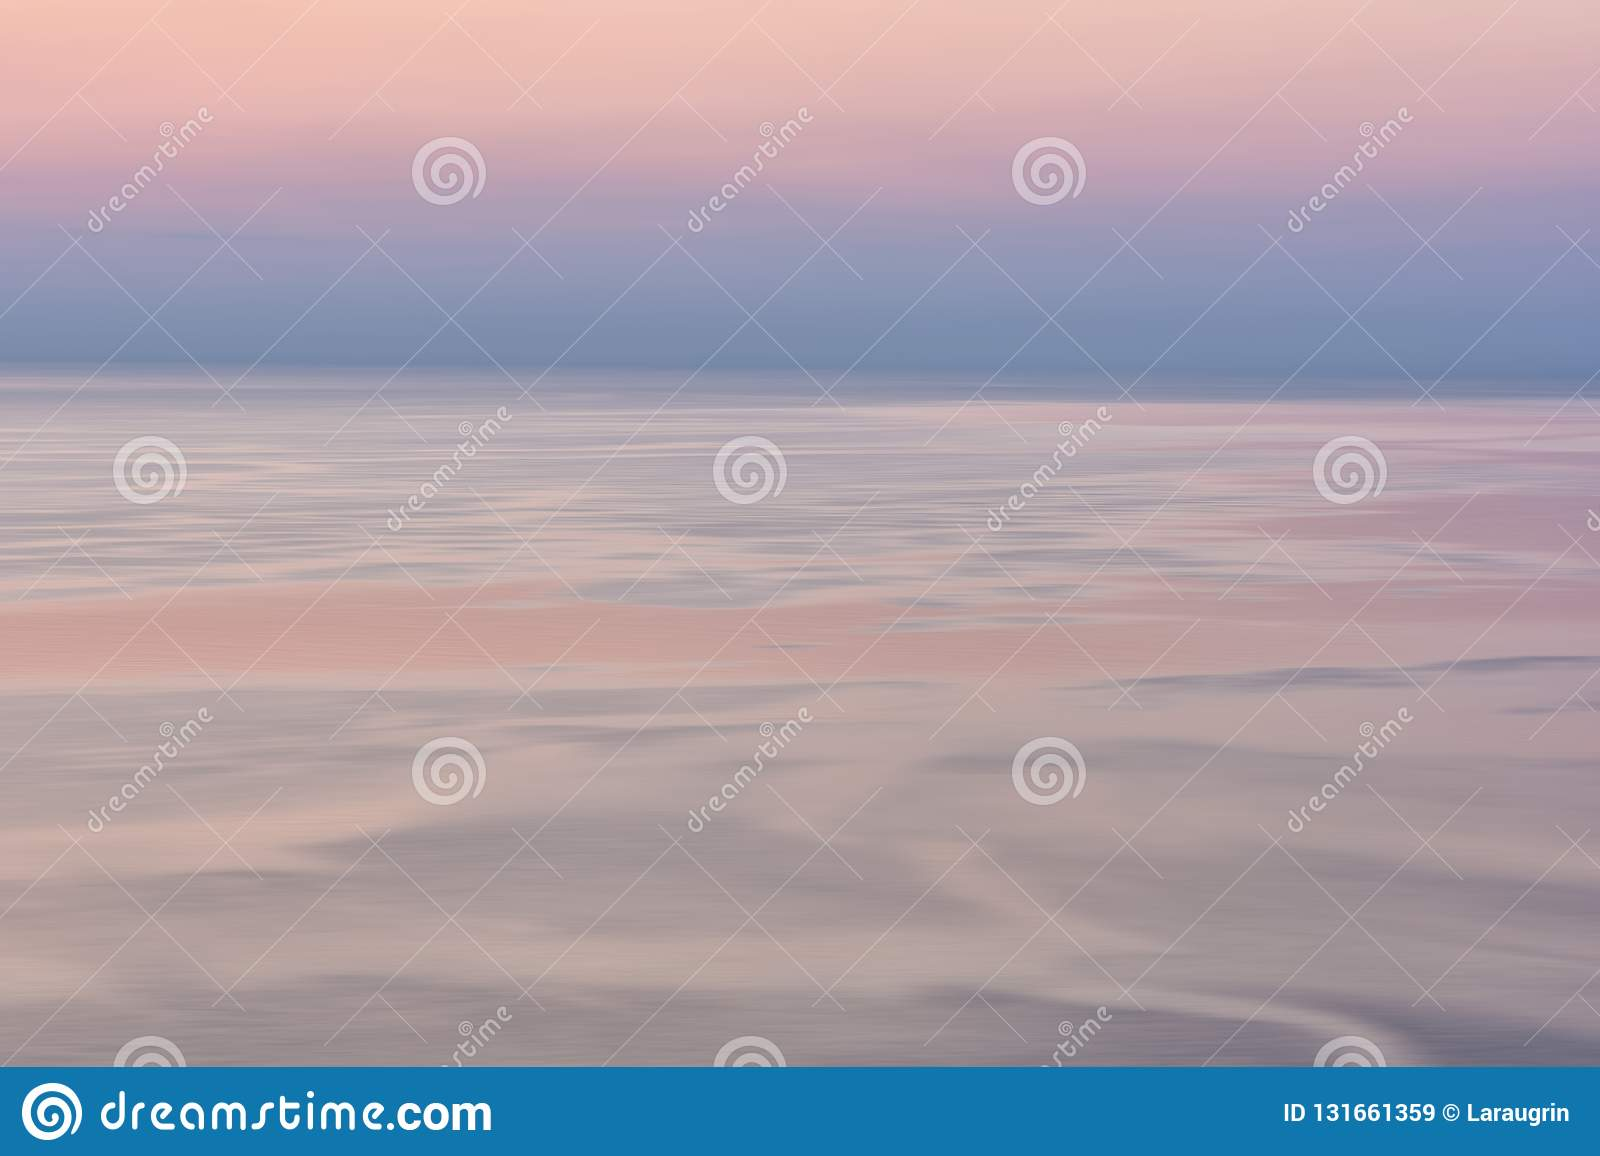 Nice pink sunset seascape in pastel shades, peace and calm outdoor travel background, motion blur